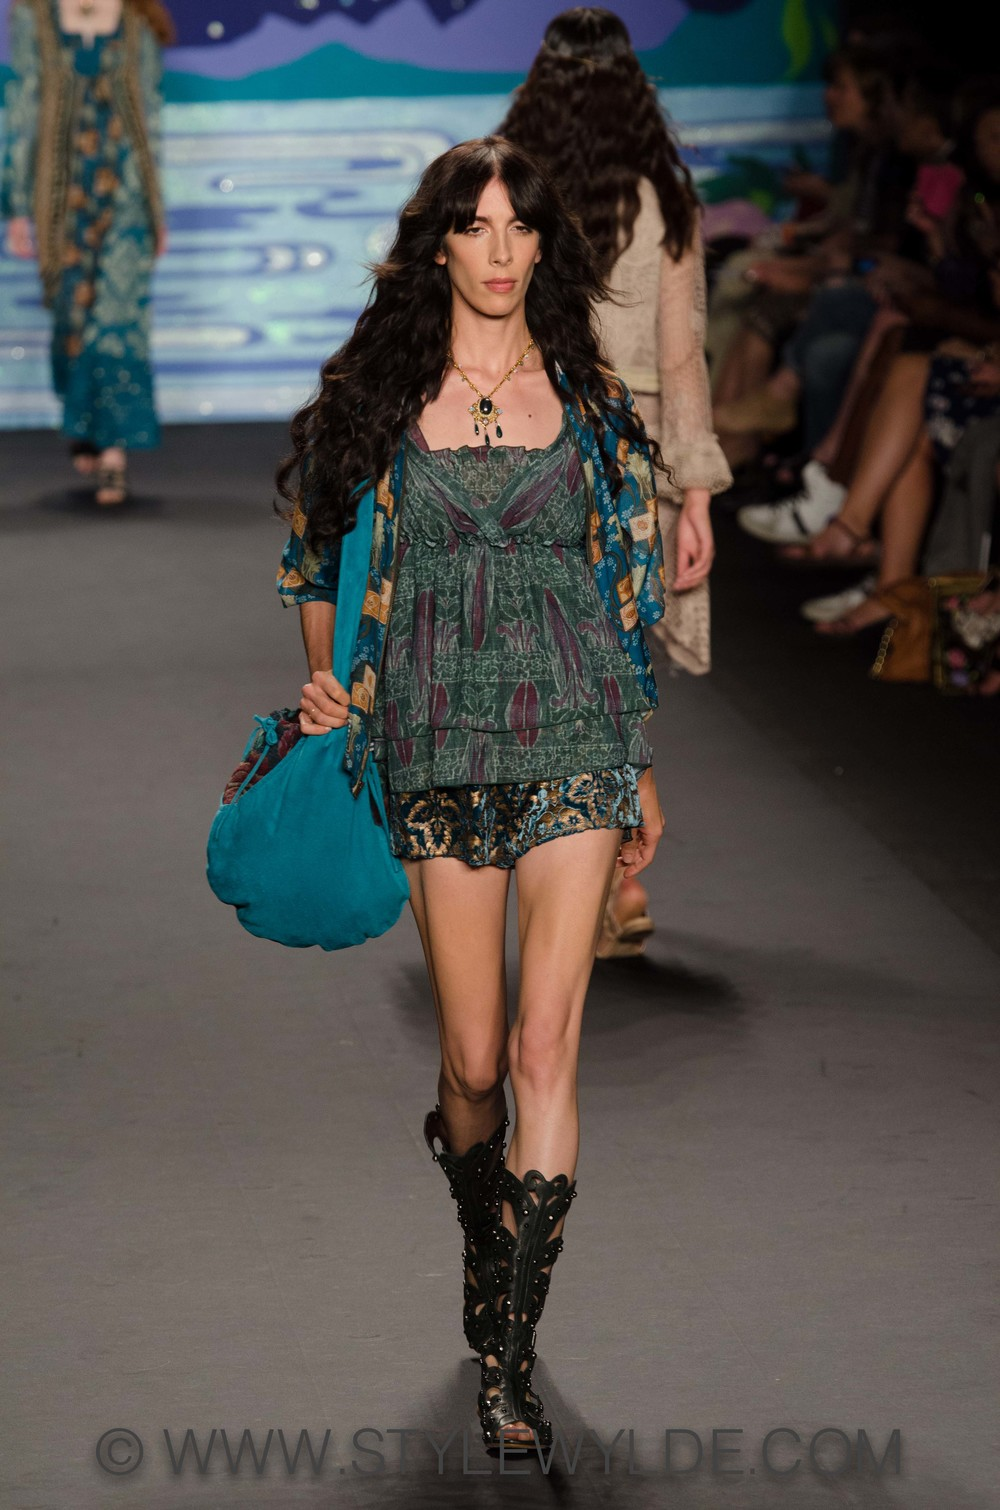 STYLEWYLDE_ANNASUI_SS2014_GALLERY_IMAGES (10 of 49).jpg